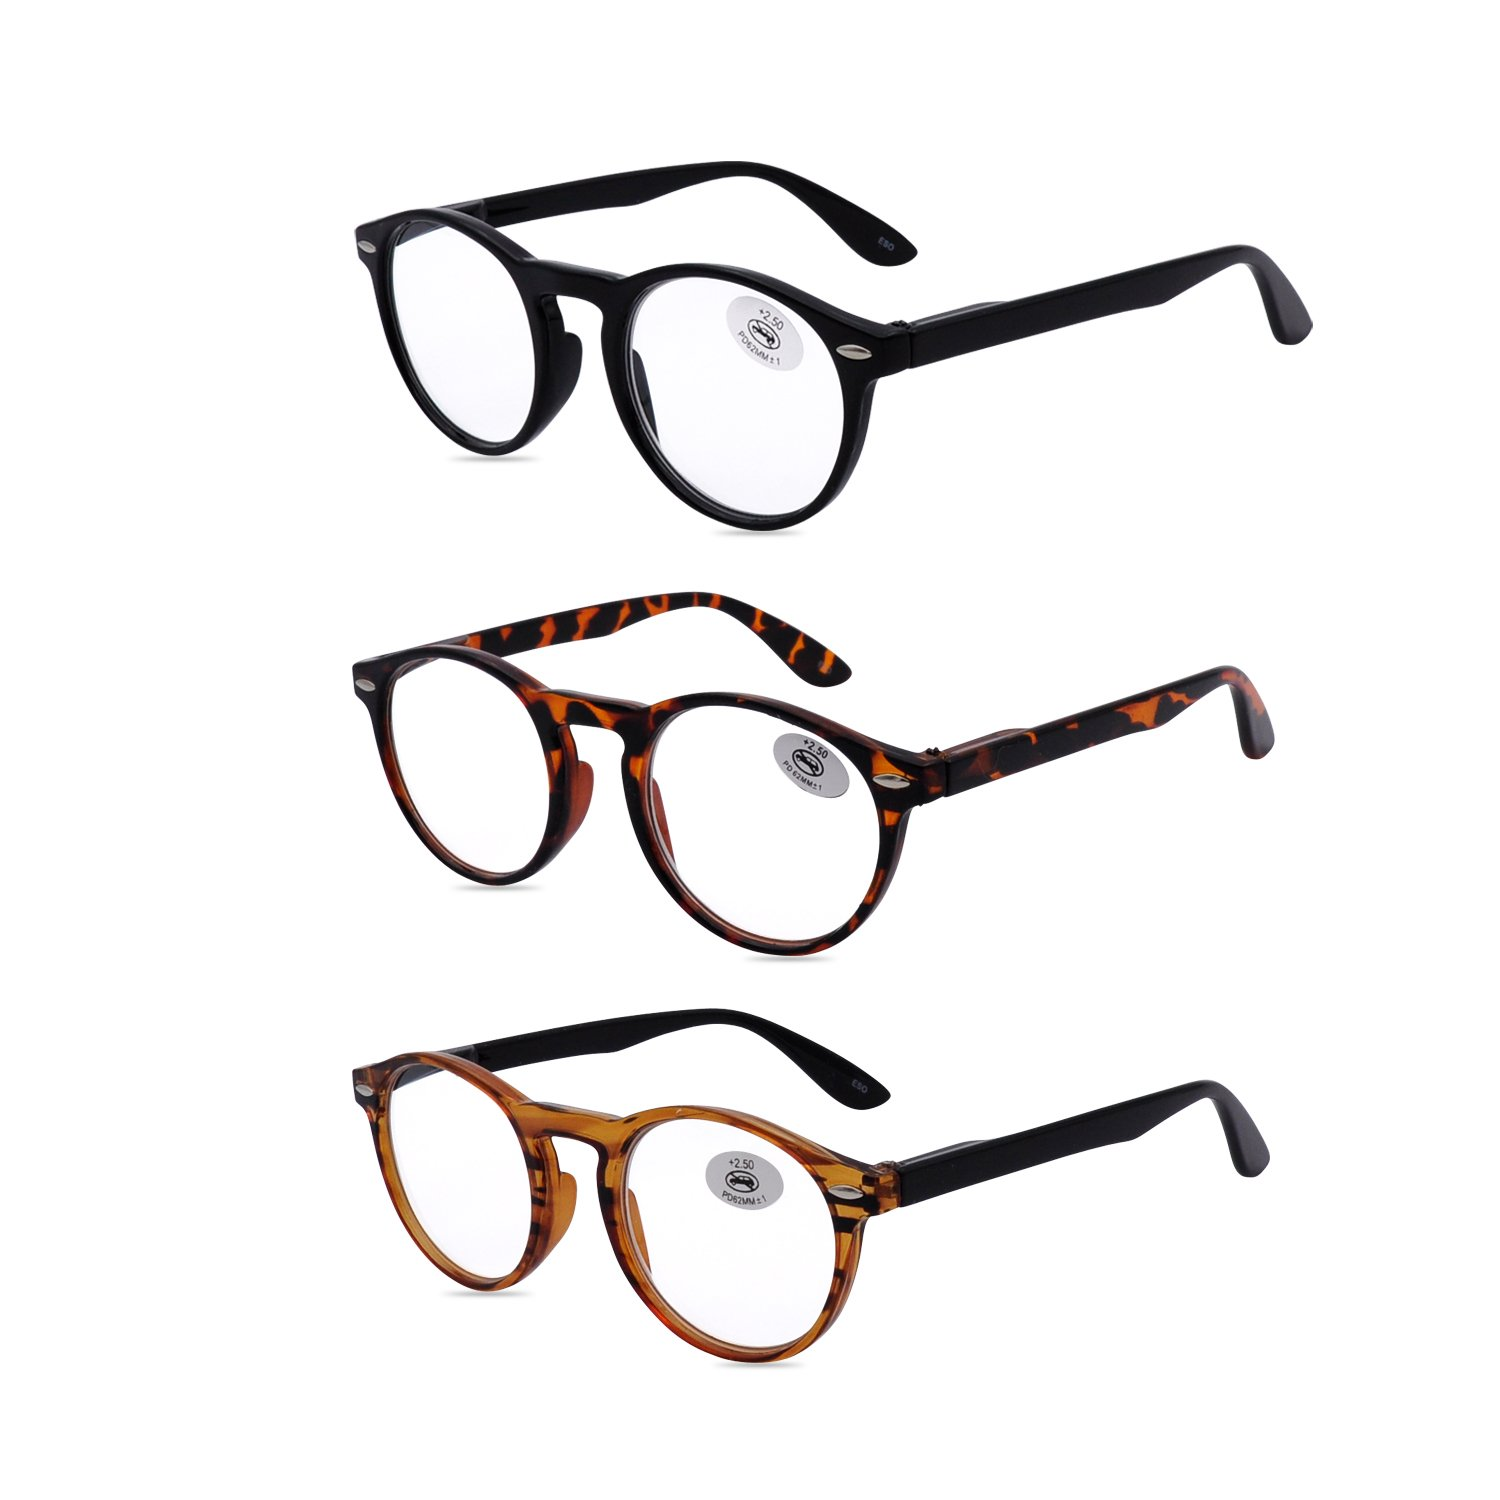 Amillet Reading Glasses 3 Pack for Men and Women,Retro Round Spring Hinges Frame Readers,3 Colors with Gift Packing,Glasses for Reading +2.00